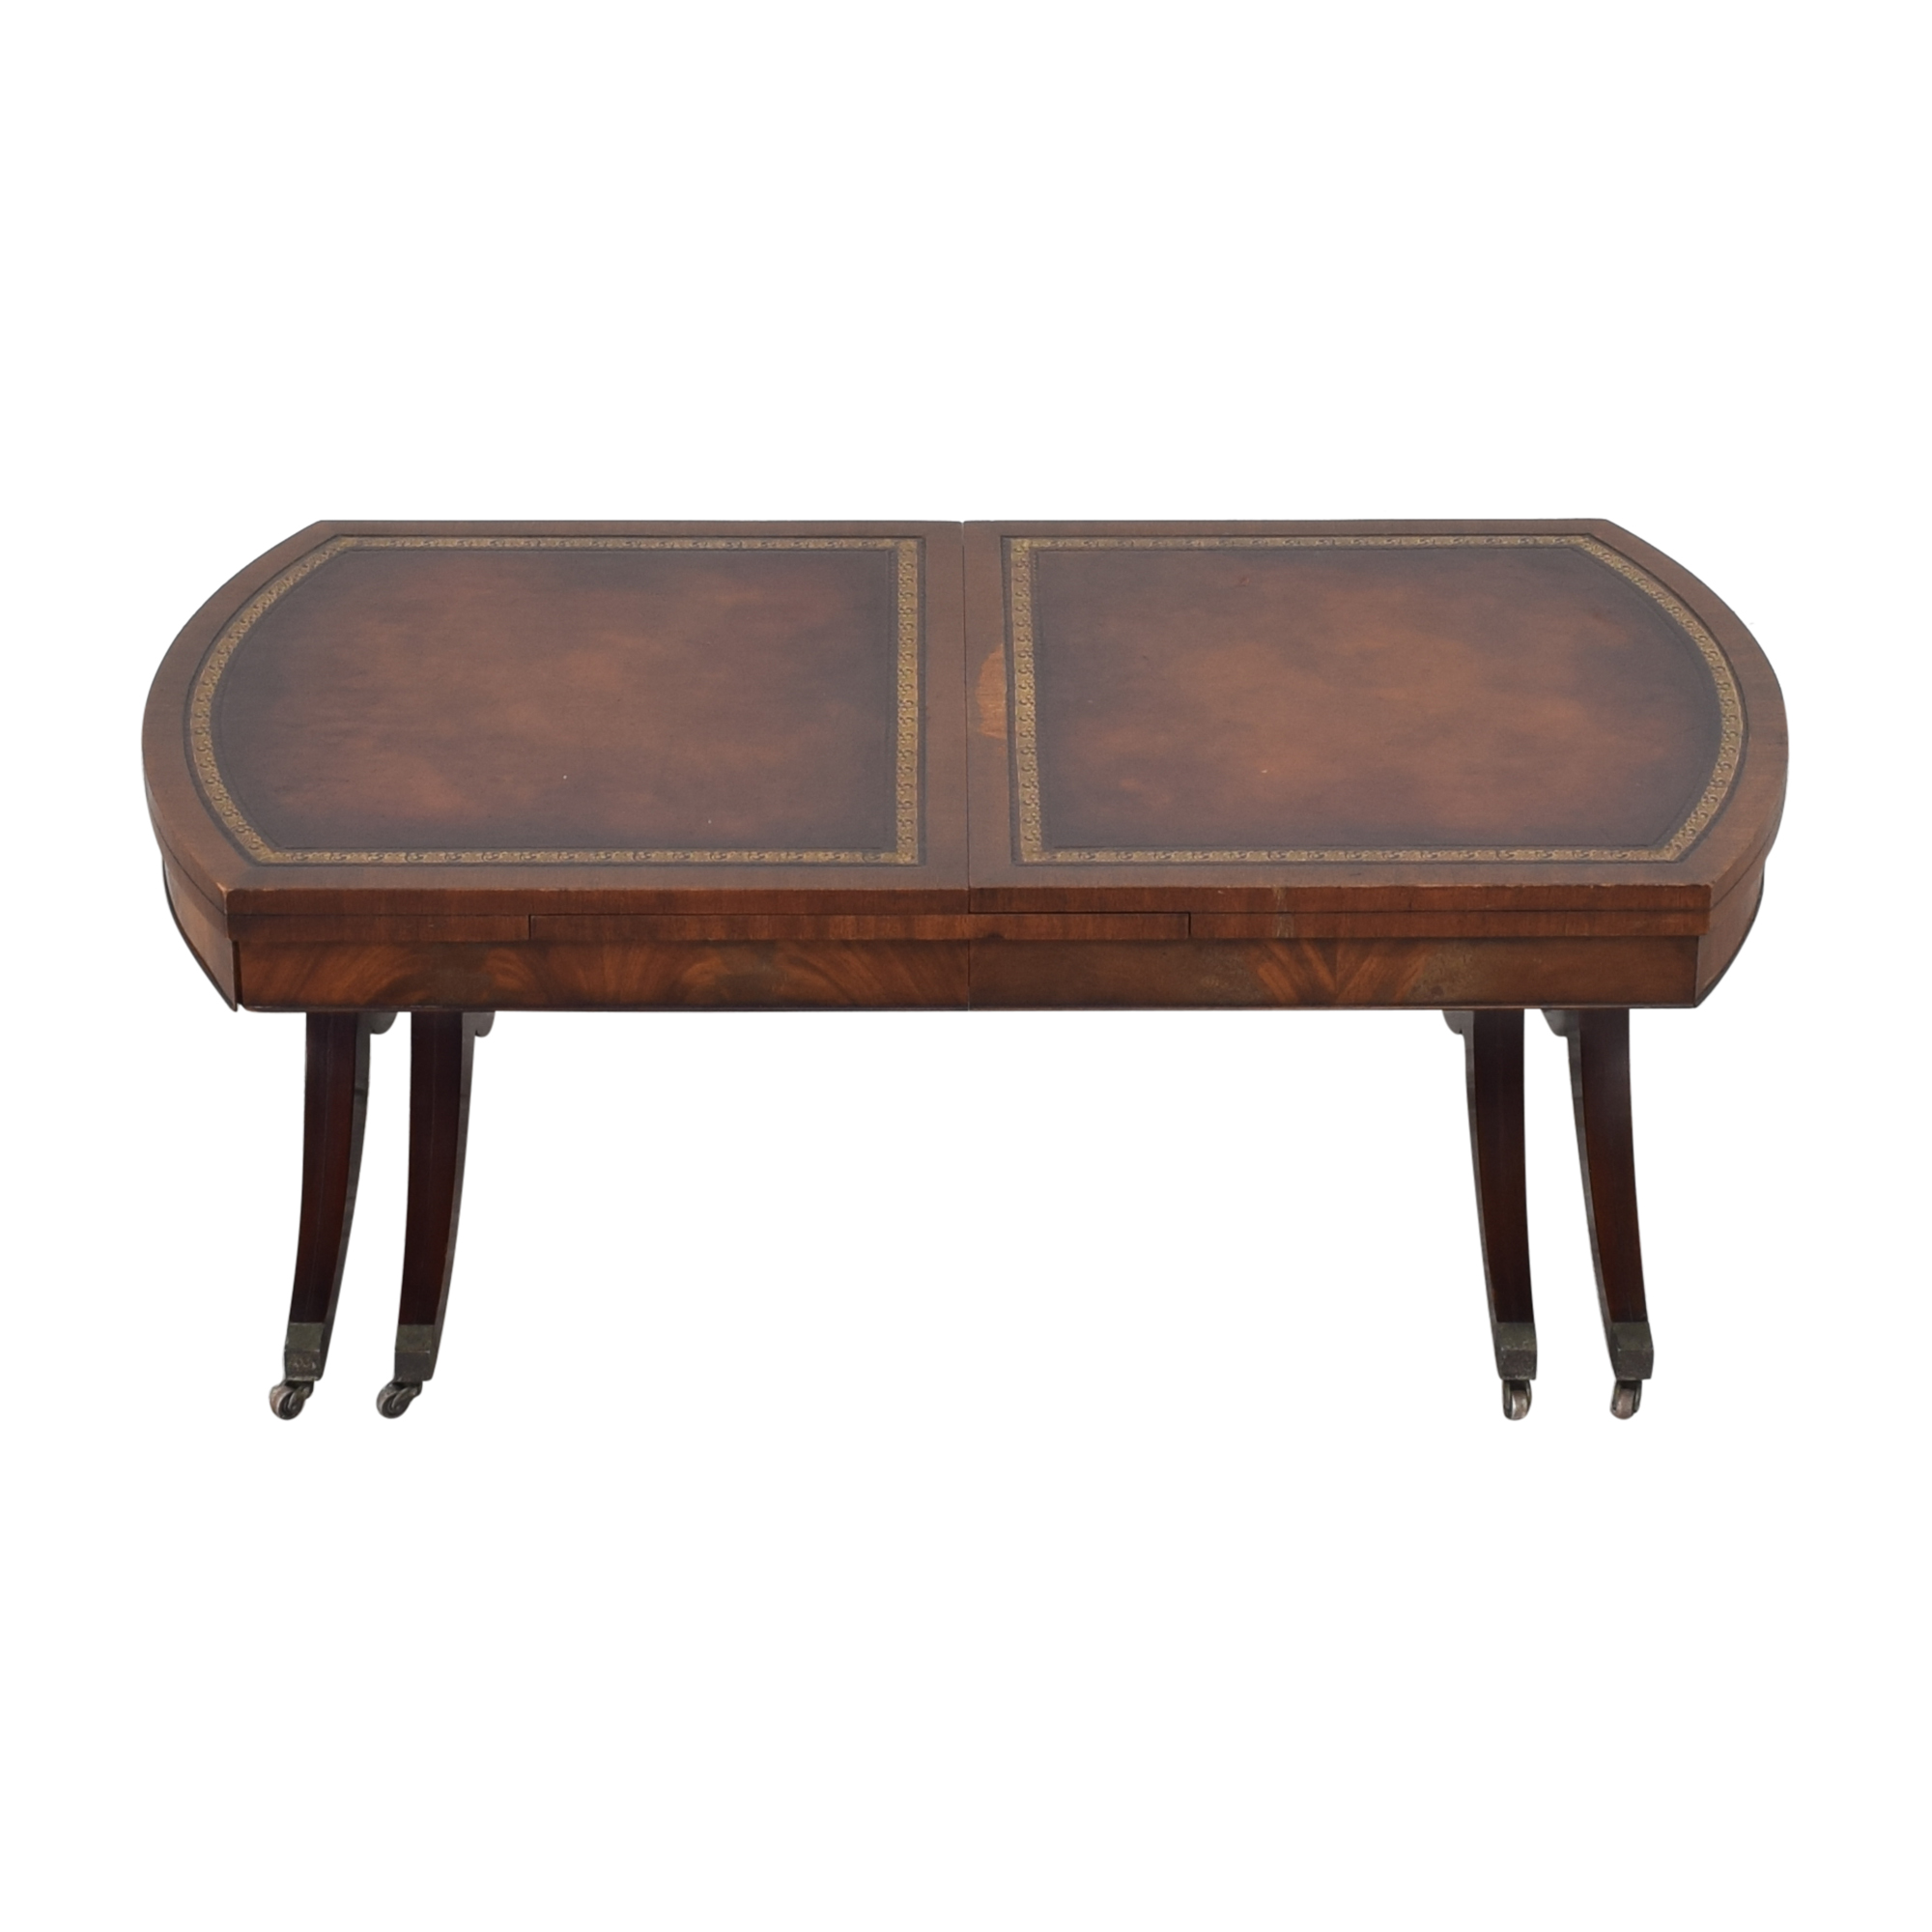 Heirloom Weiman Extendable Coffee Table